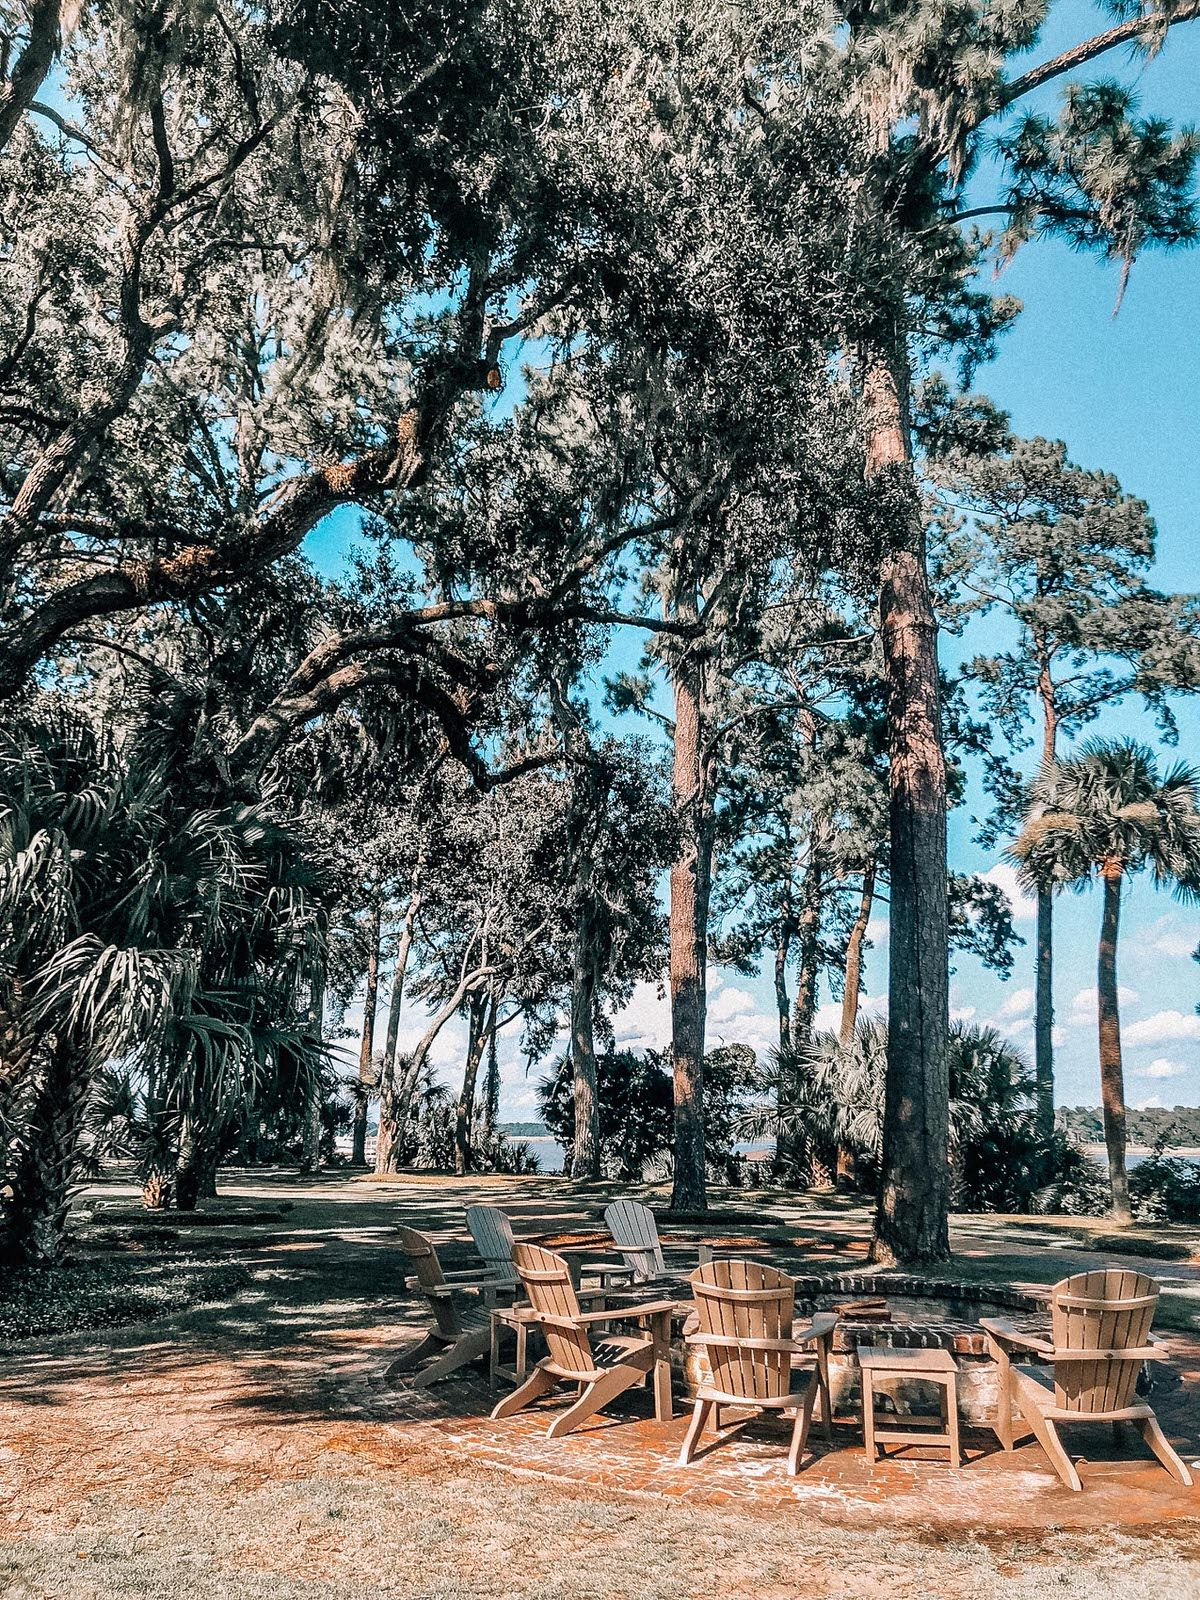 Our Stay At Montage Palmetto Bluff South Carolina